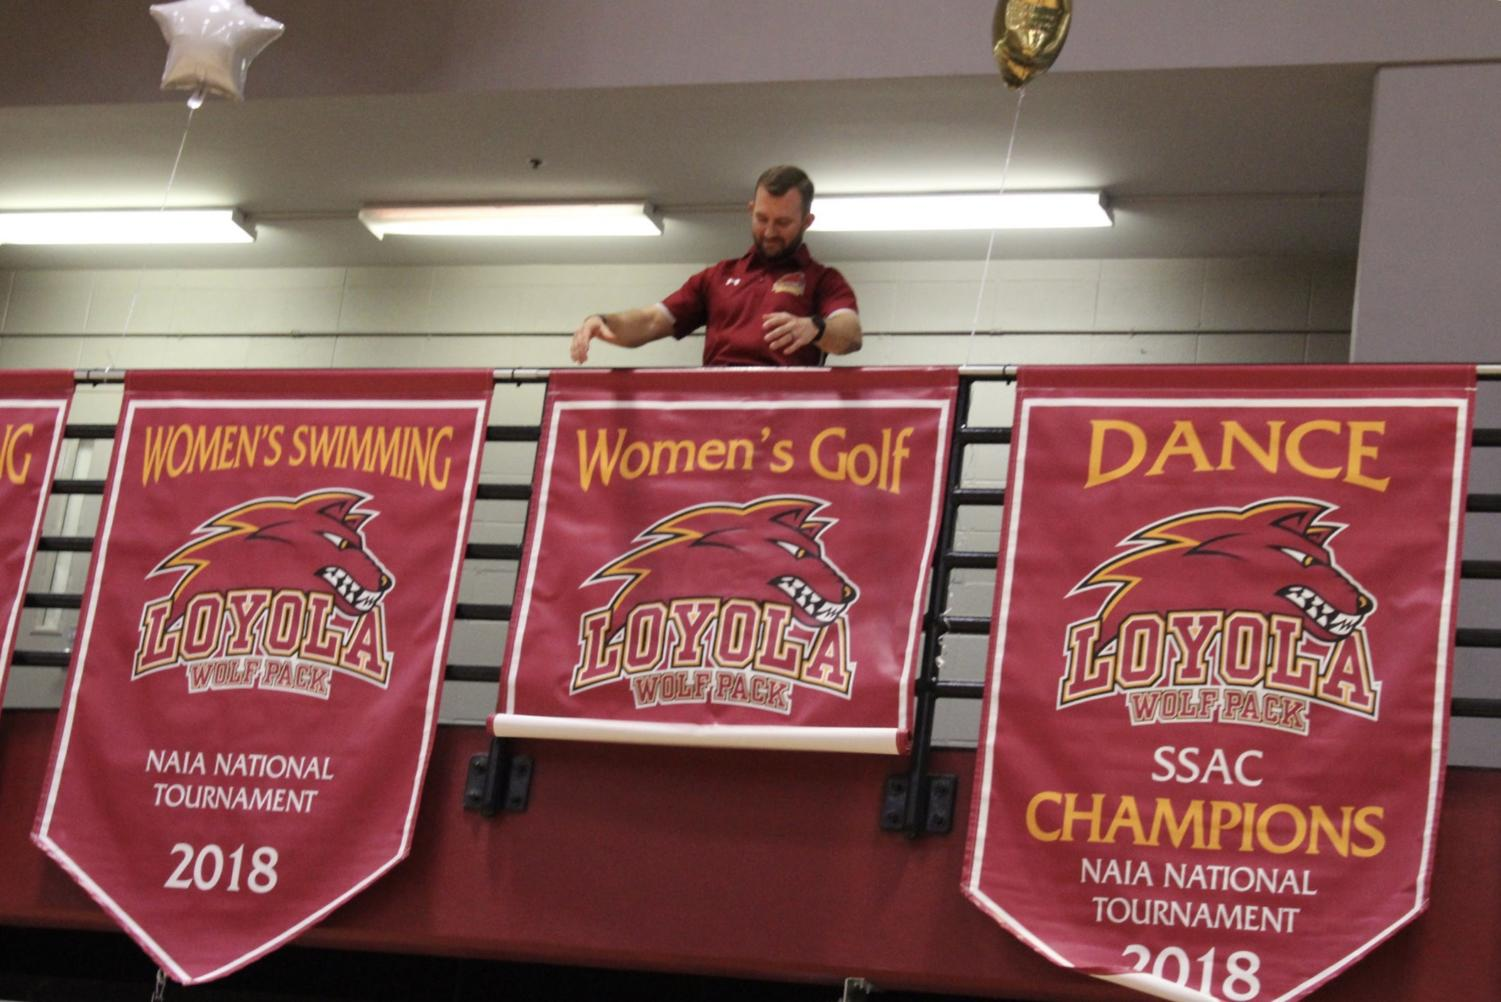 Four+championship+banners+were+revealed+at+Senior+night.+The+dance+team%2C+women%27s+golf+team+and+both+swim+teams+received+a+new+banner.